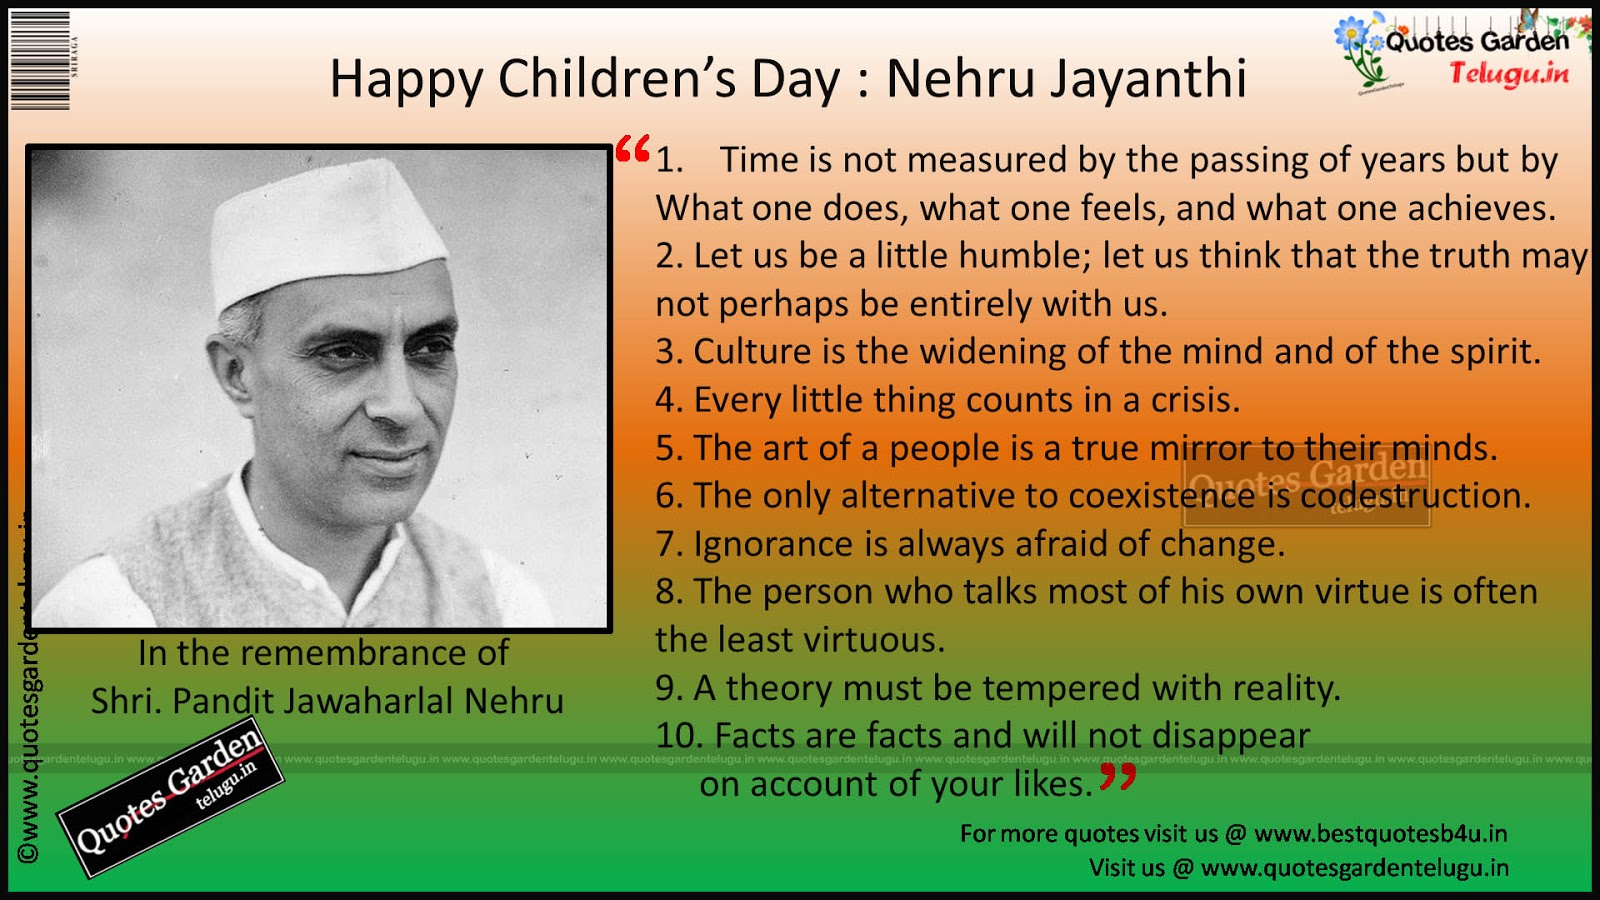 pandit jawaharlal nehru essay in english Nehru passed his bar examinations in 1912 and was admitted to the english jawaharlal nehru was the first prime mi essay india—pandit jawaharlal nehru.